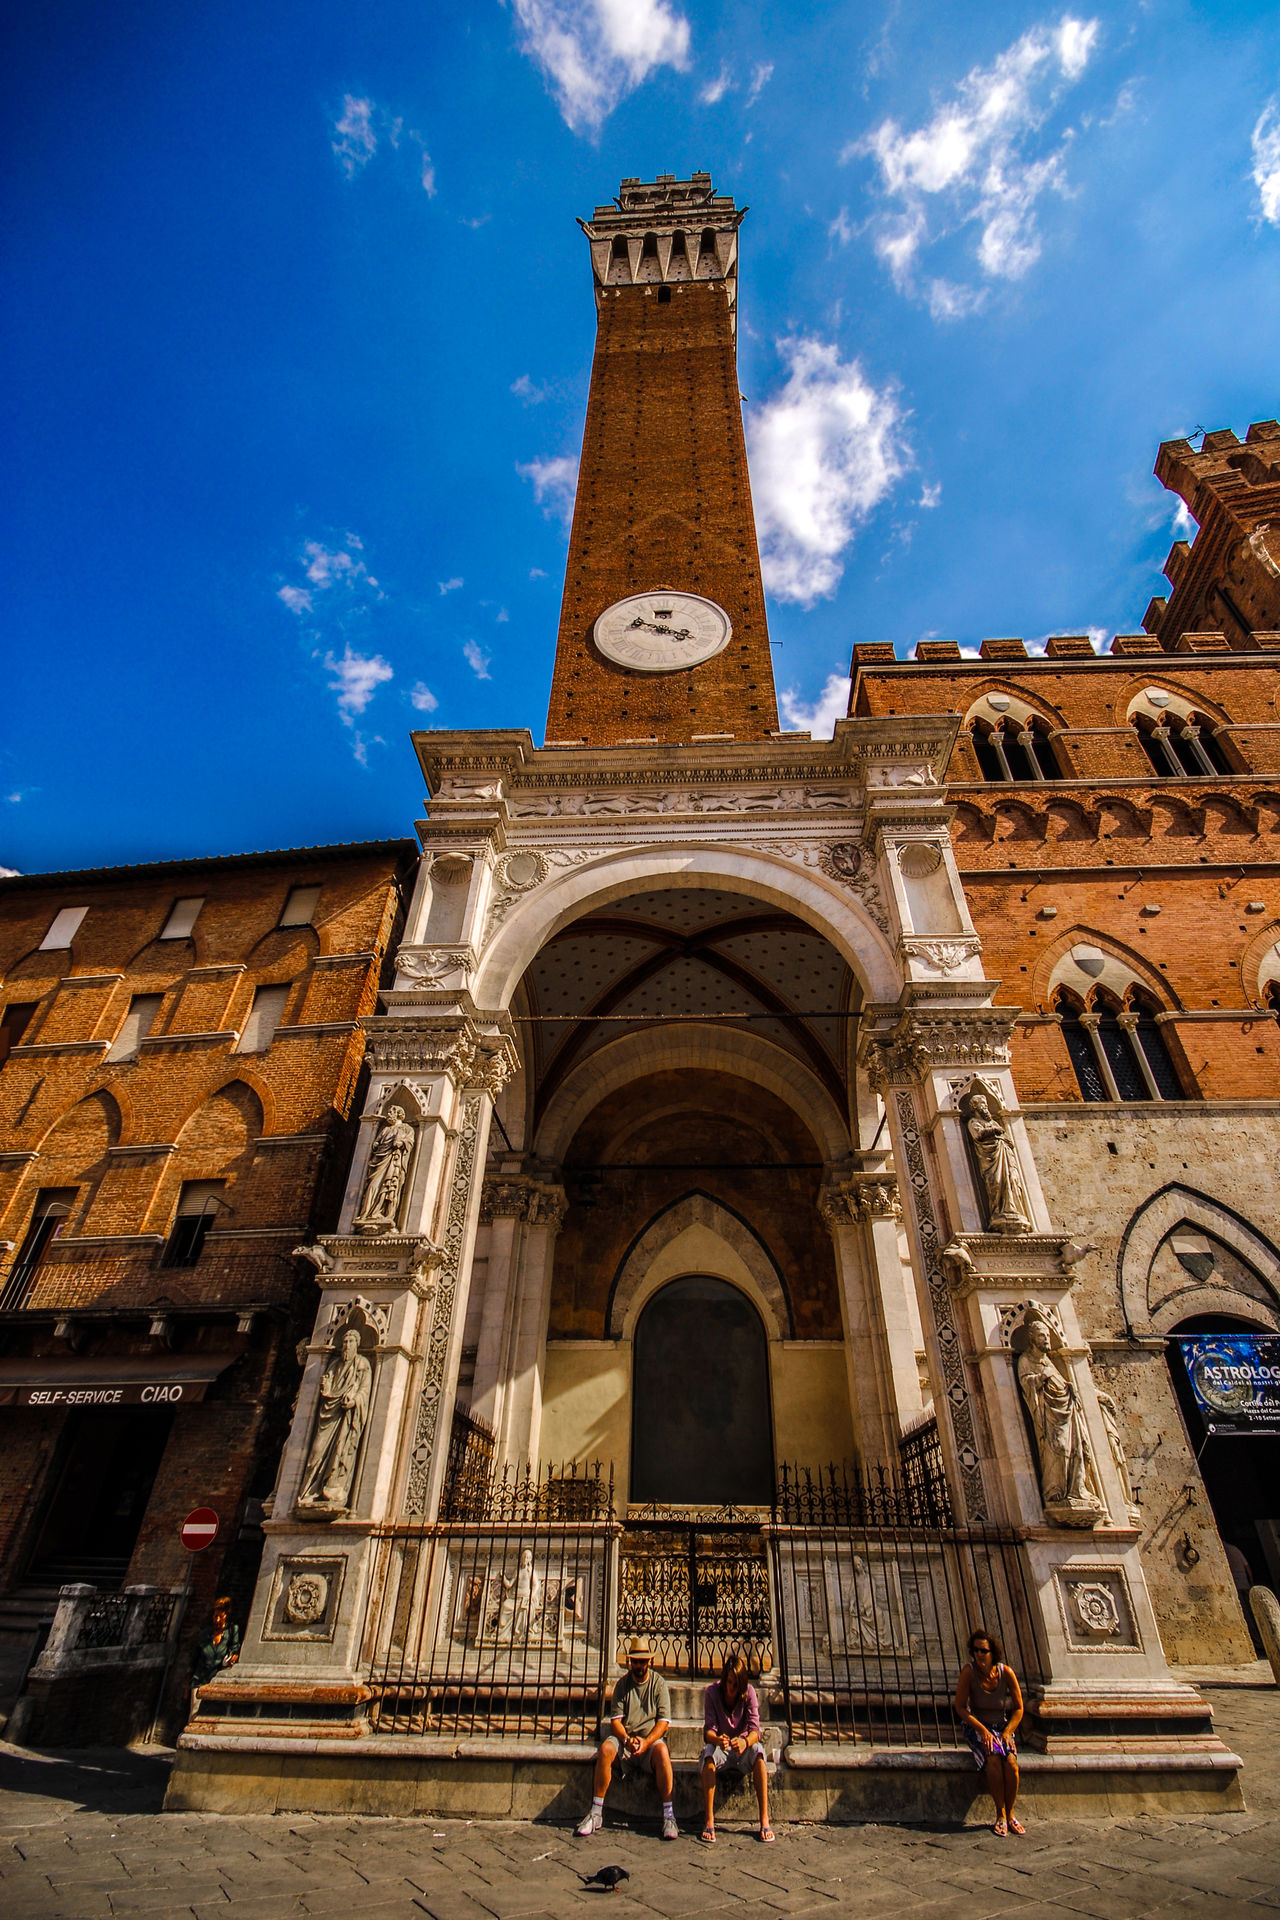 Torre del Mangia, Siena, Italy Arch Architecture Building Exterior Built Structure City Cloud Clouds Colours Day EyeEm Gallery History Medieval Medieval Architecture Medieval Town Outdoors Palazzo Comunale Piazza Del Campo Sky Tower Travel Destinations